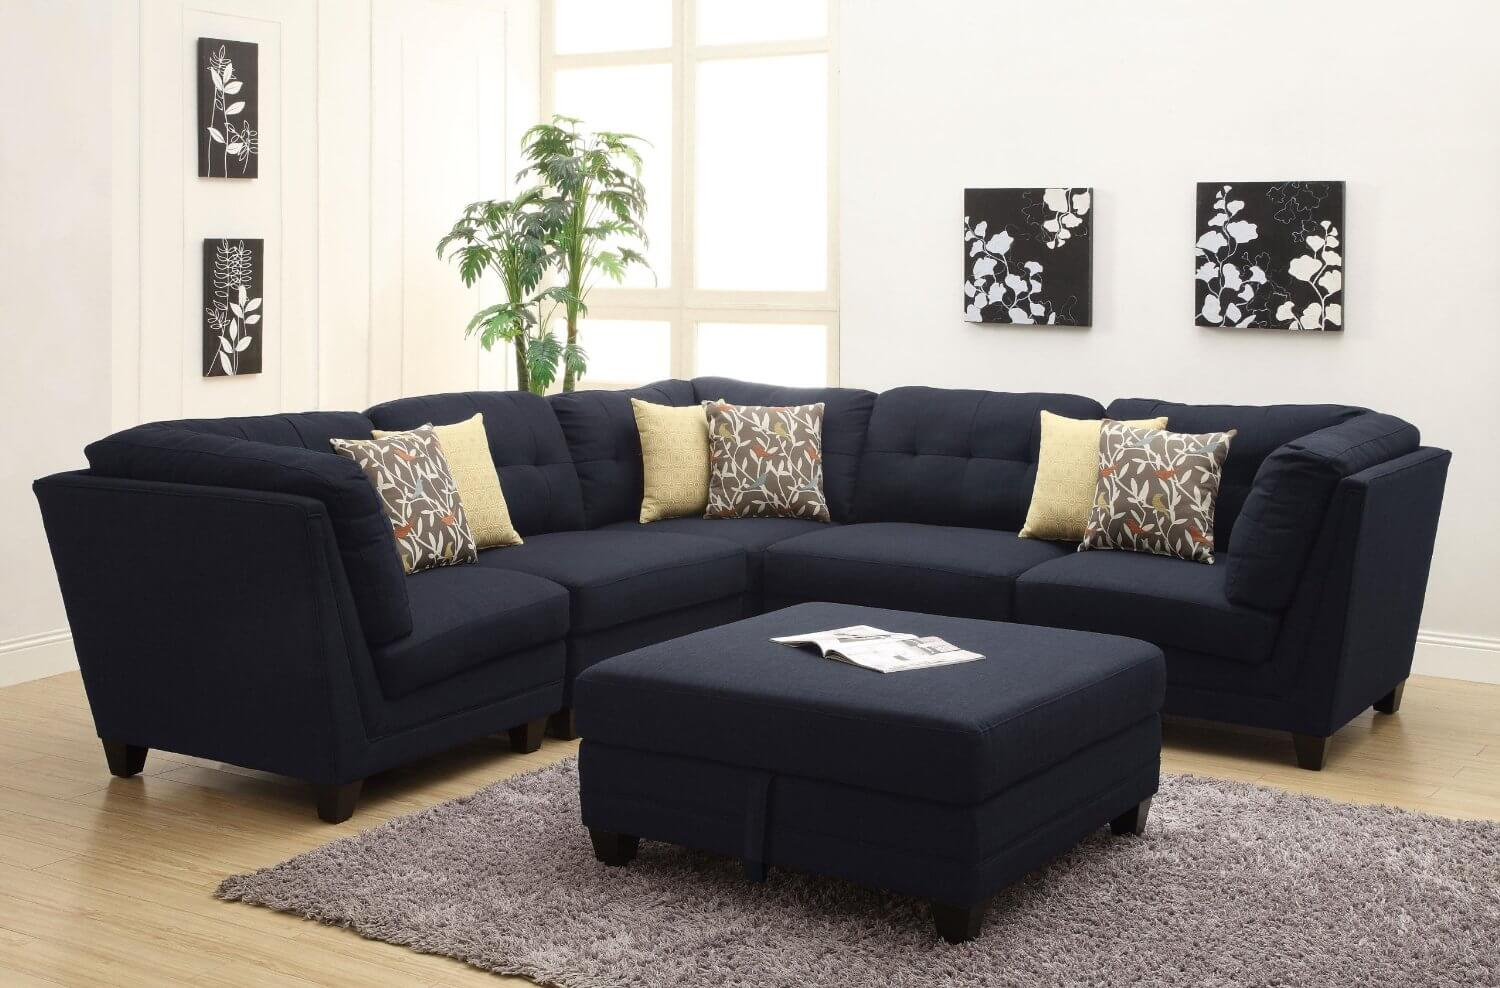 37 Beautiful Sectional Sofas Under $1 000